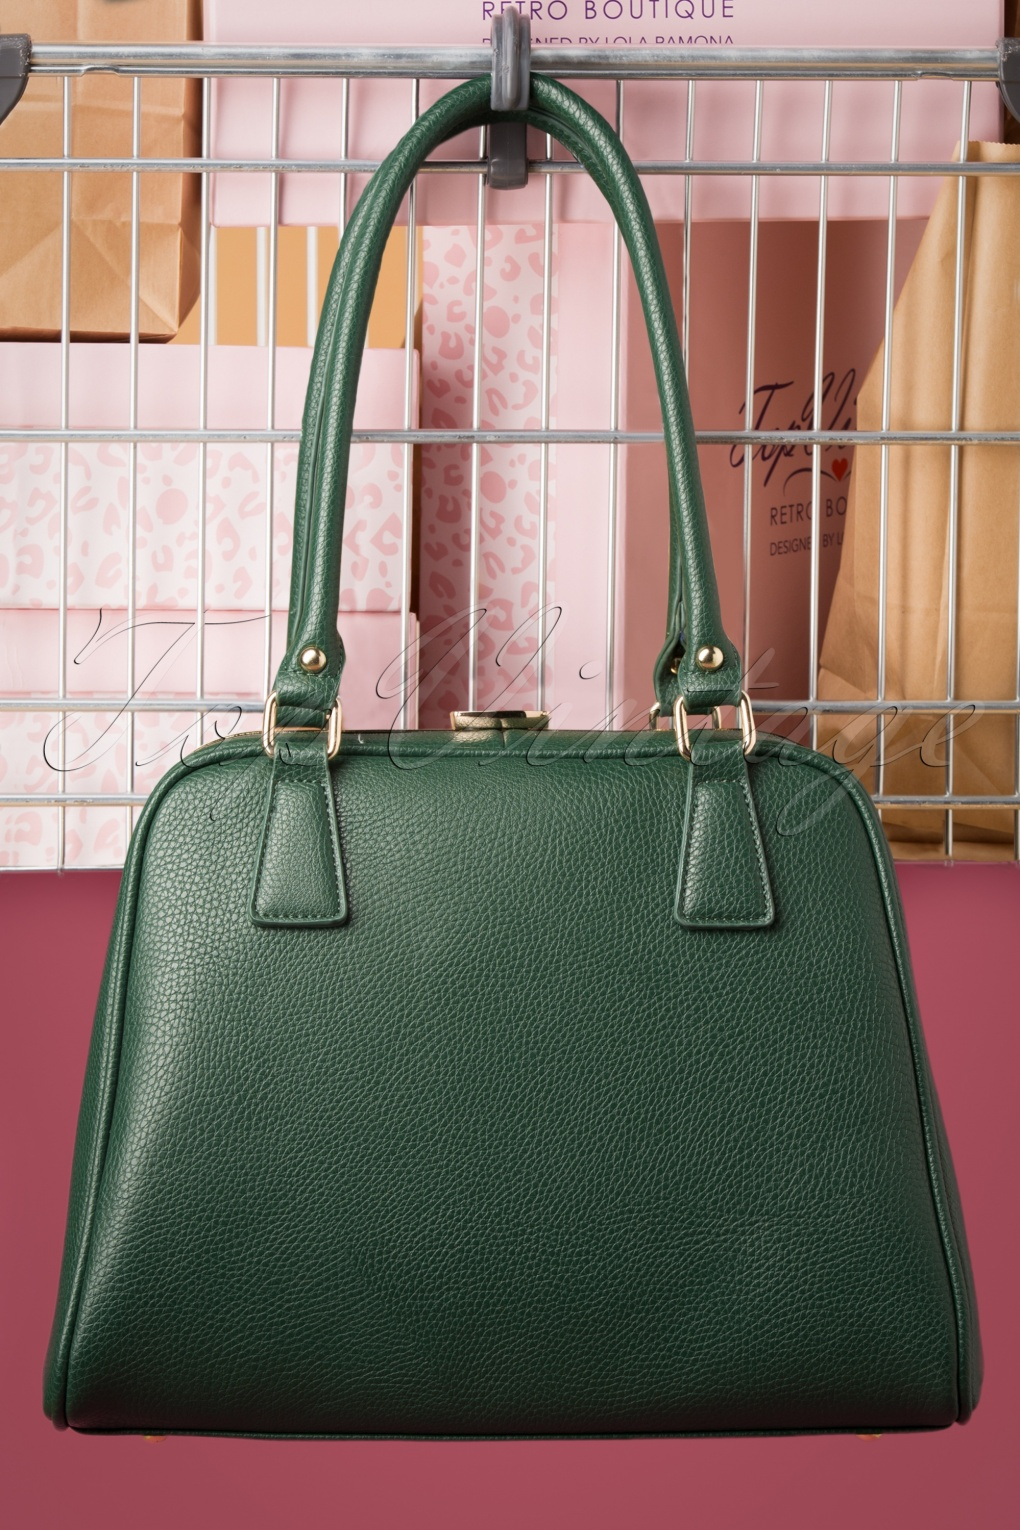 1950s Handbags, Purses, and Evening Bag Styles 50s Peggy Means Business Handbag in Bottle Green £51.09 AT vintagedancer.com